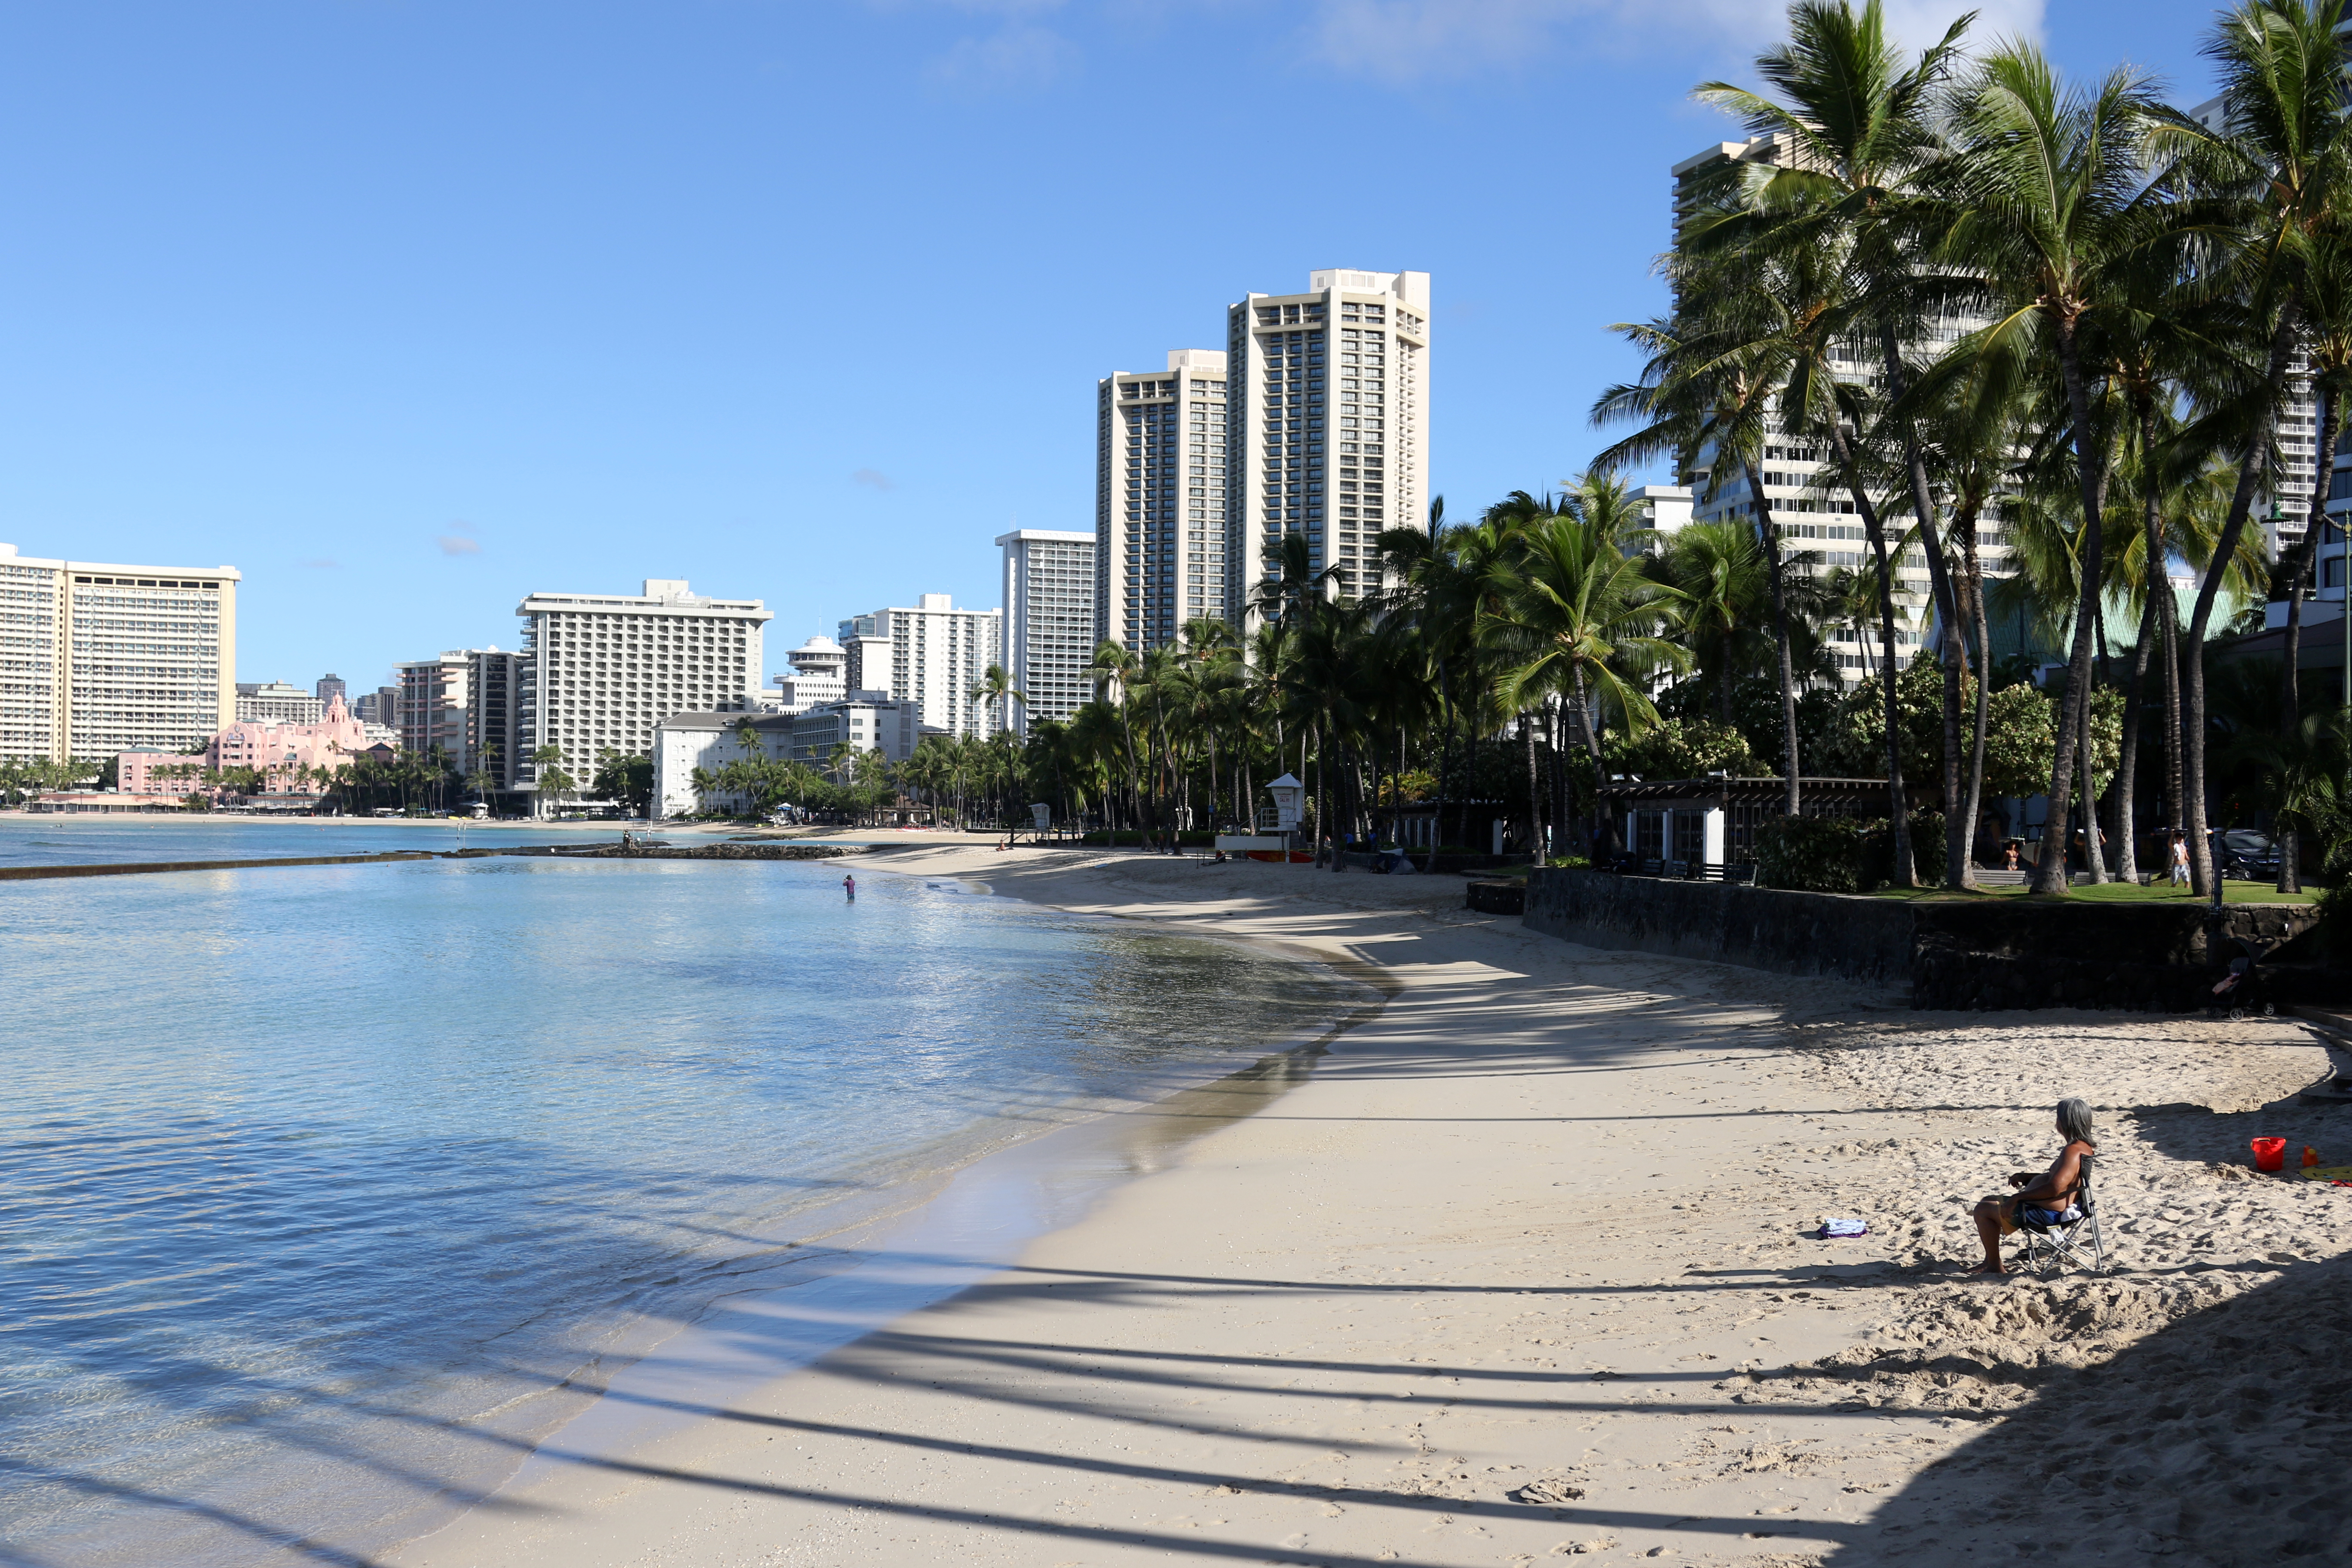 A man sits on a nearly empty Waikiki Beach in Honolulu, Friday, Oct. 2, 2020. After a summer marked by a surge of coronavirus cases in Hawaii, officials plan to reboot the tourism based economy later this month despite concerns about the state's pre-travel testing program.